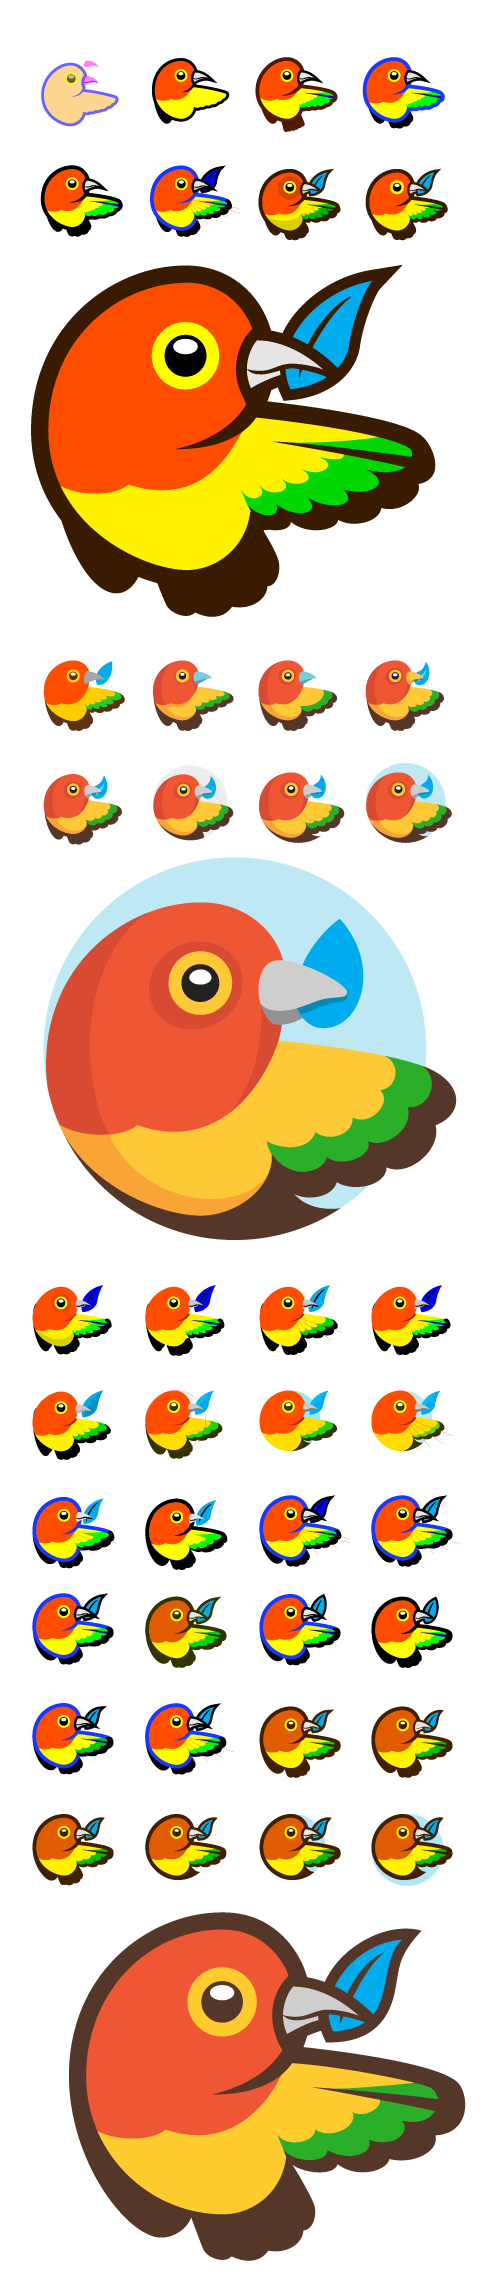 Bower logo iterations